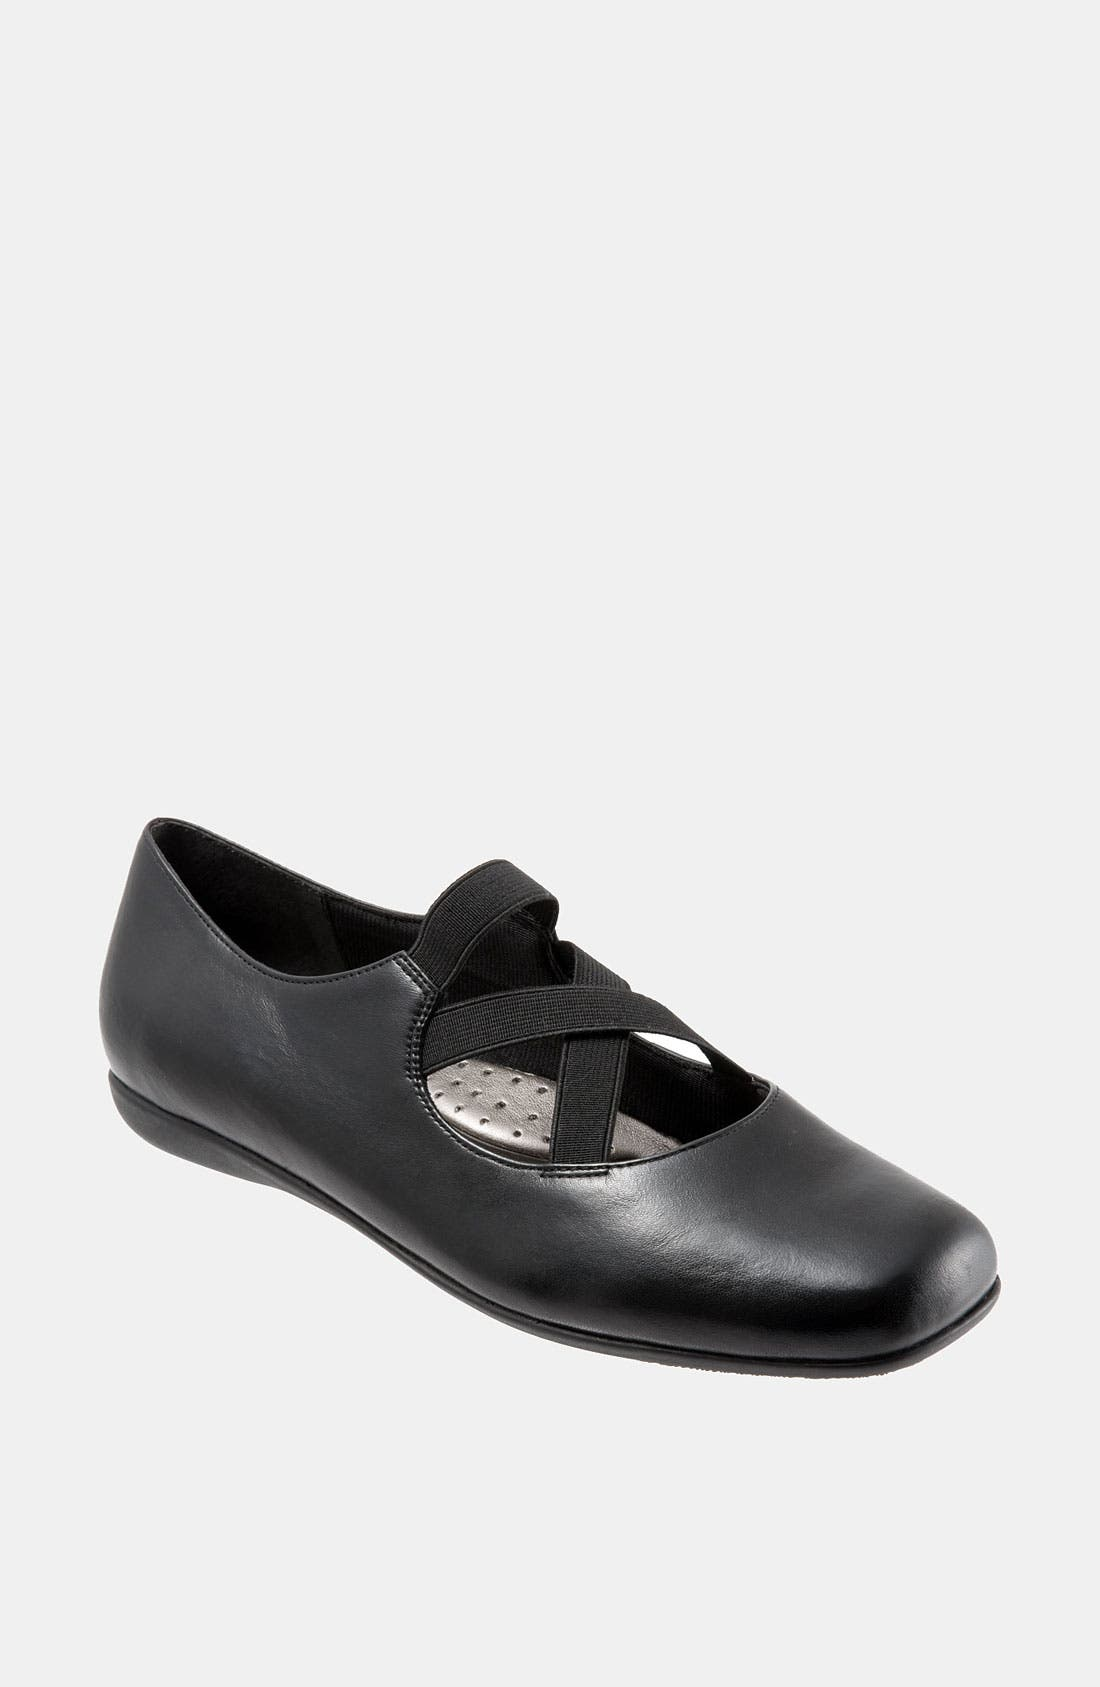 Alternate Image 1 Selected - Trotters 'Seeker' Nappa Leather Flat